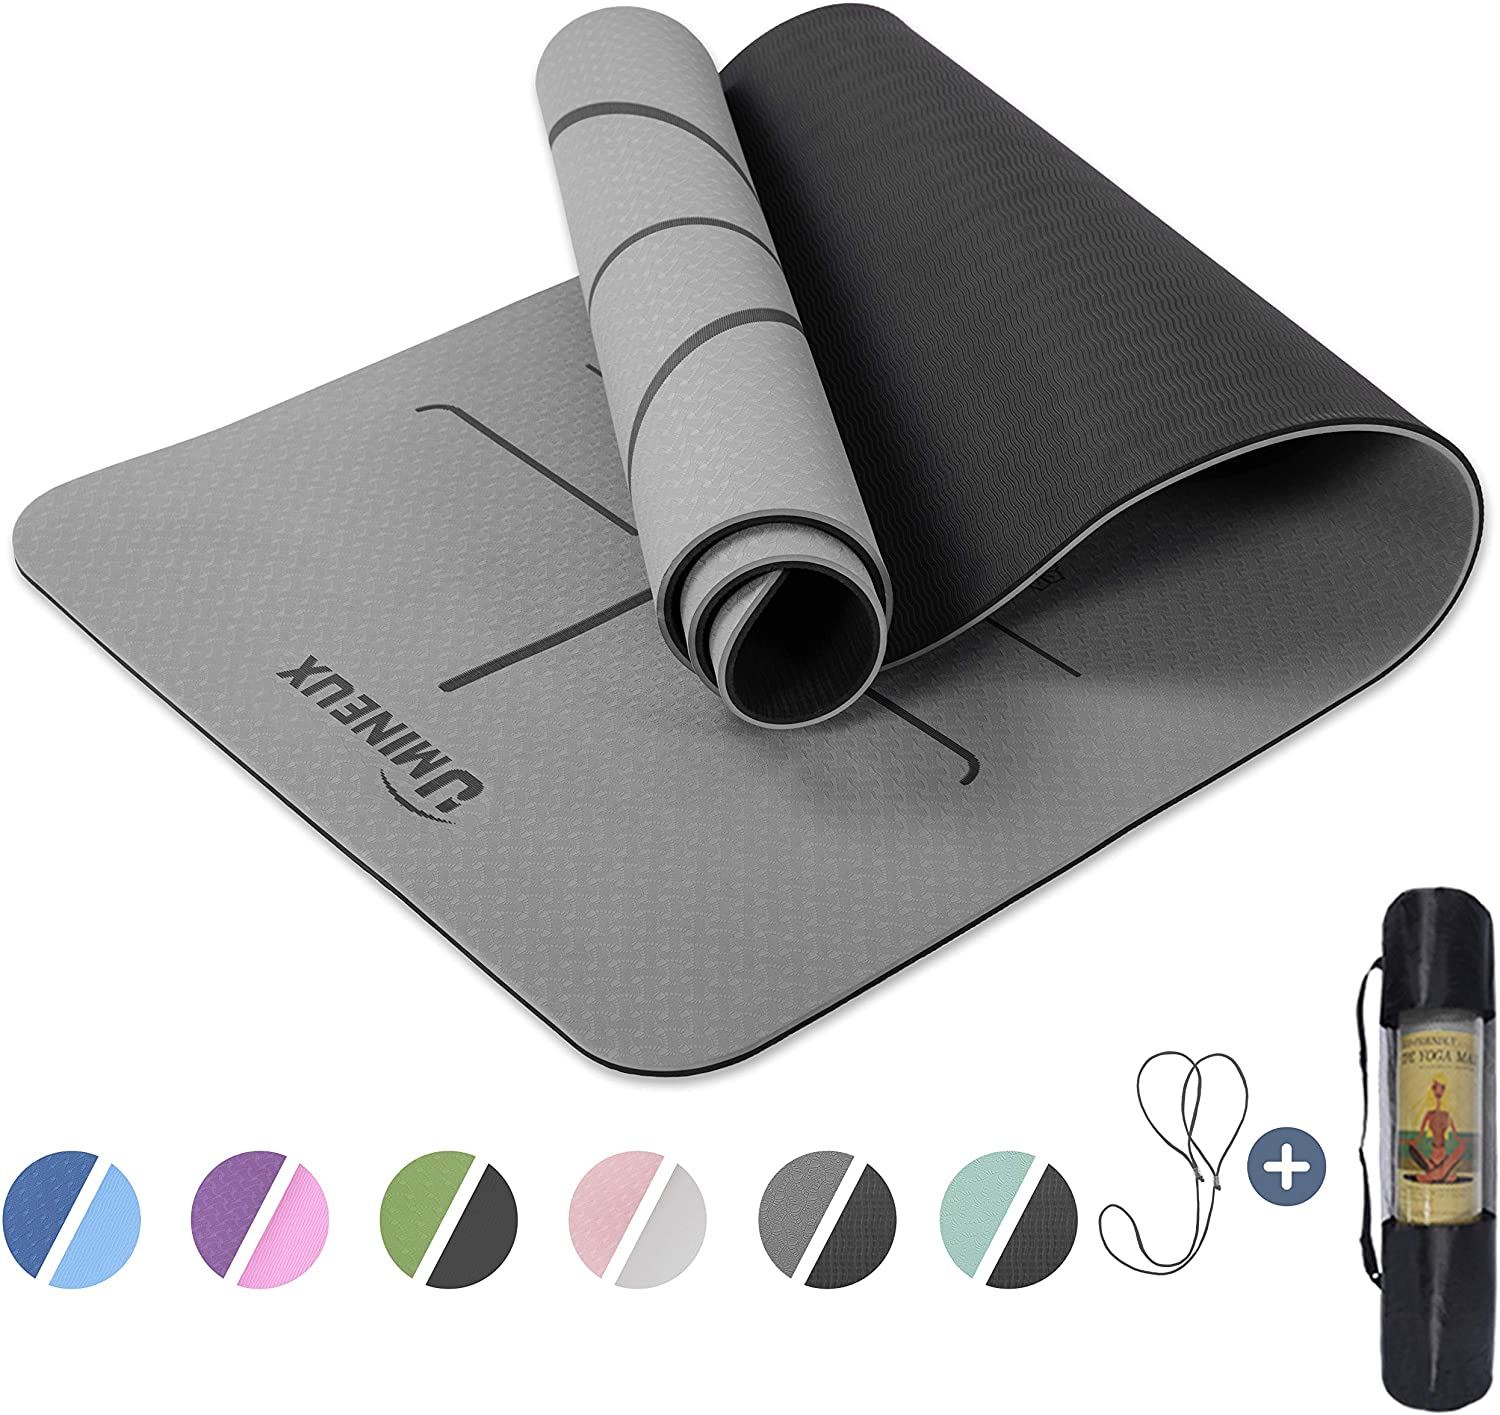 Fitness Workout Mats for Home Gruper Non Slip Yoga Mat,Eco Friendly Exercise Mat for Hot Yoga,Extra Large Size,Free Carry Bag,Pro Yoga Mats for Women